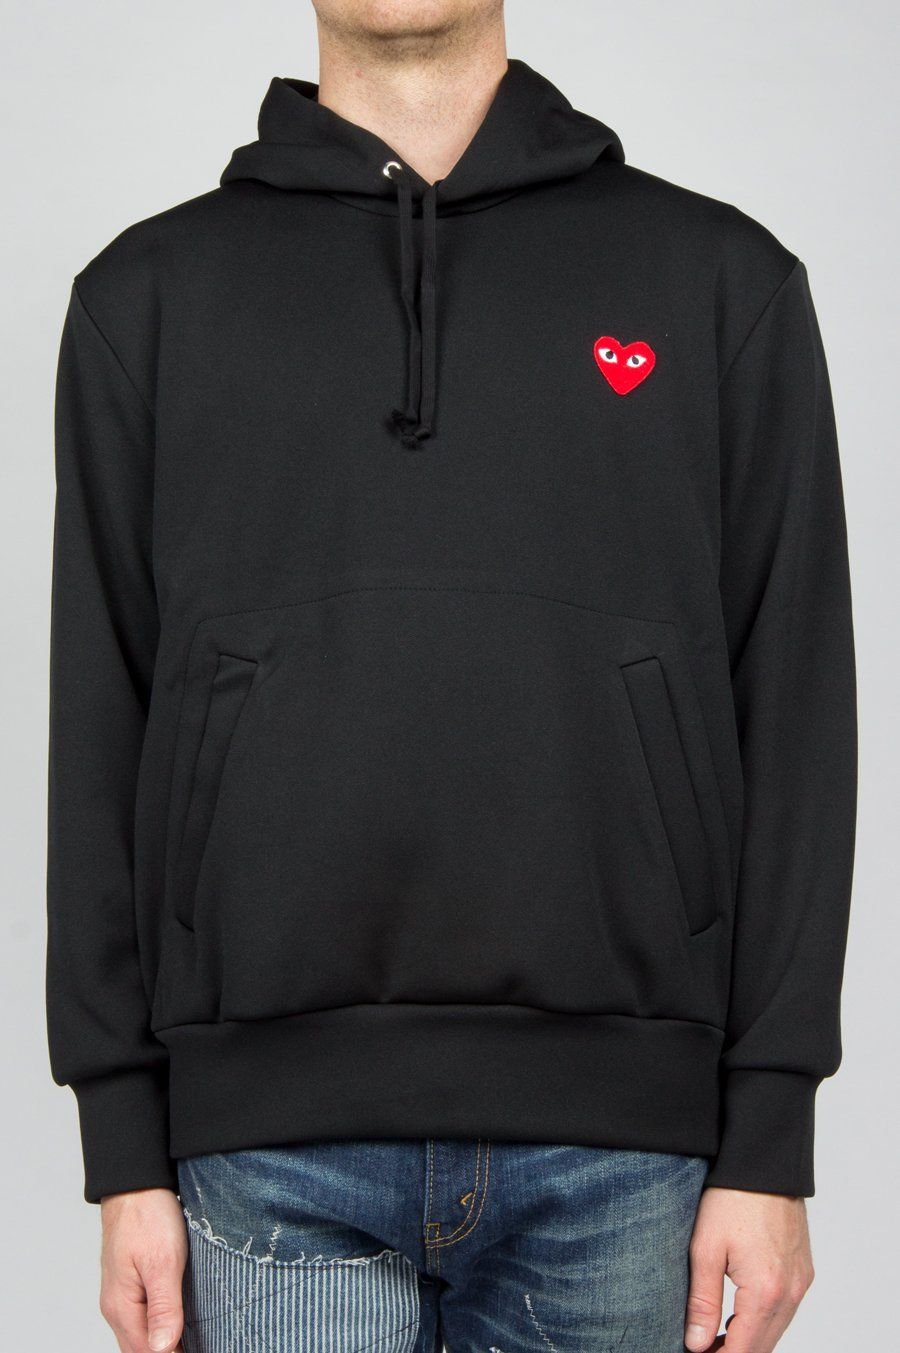 Comme Des Garcons Play Red Heart Pullover Hoody Black Hoodies Comme Des Garcons Pullover